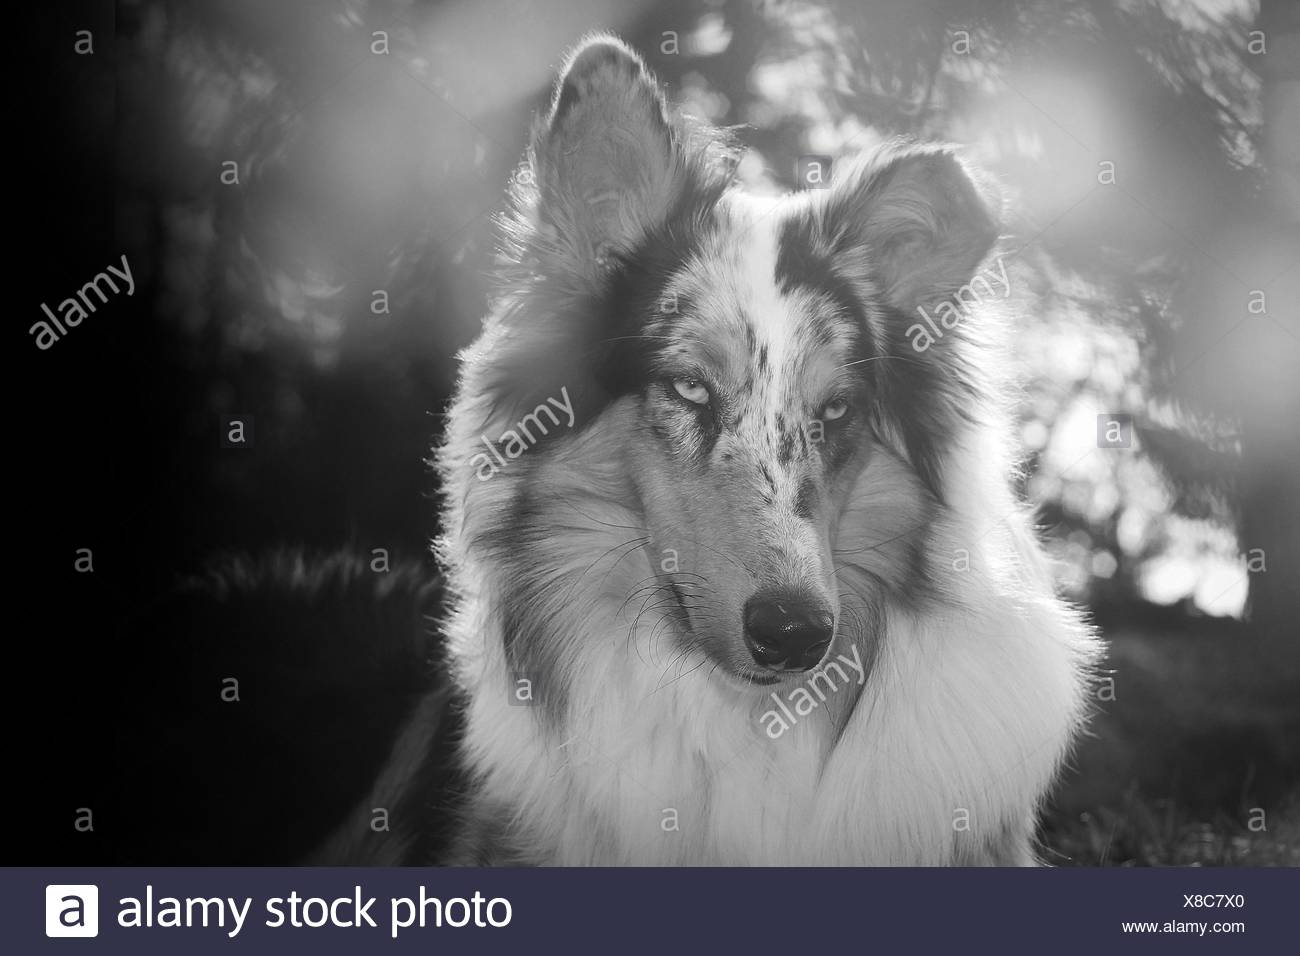 longhaired Collie portrait - Stock Image